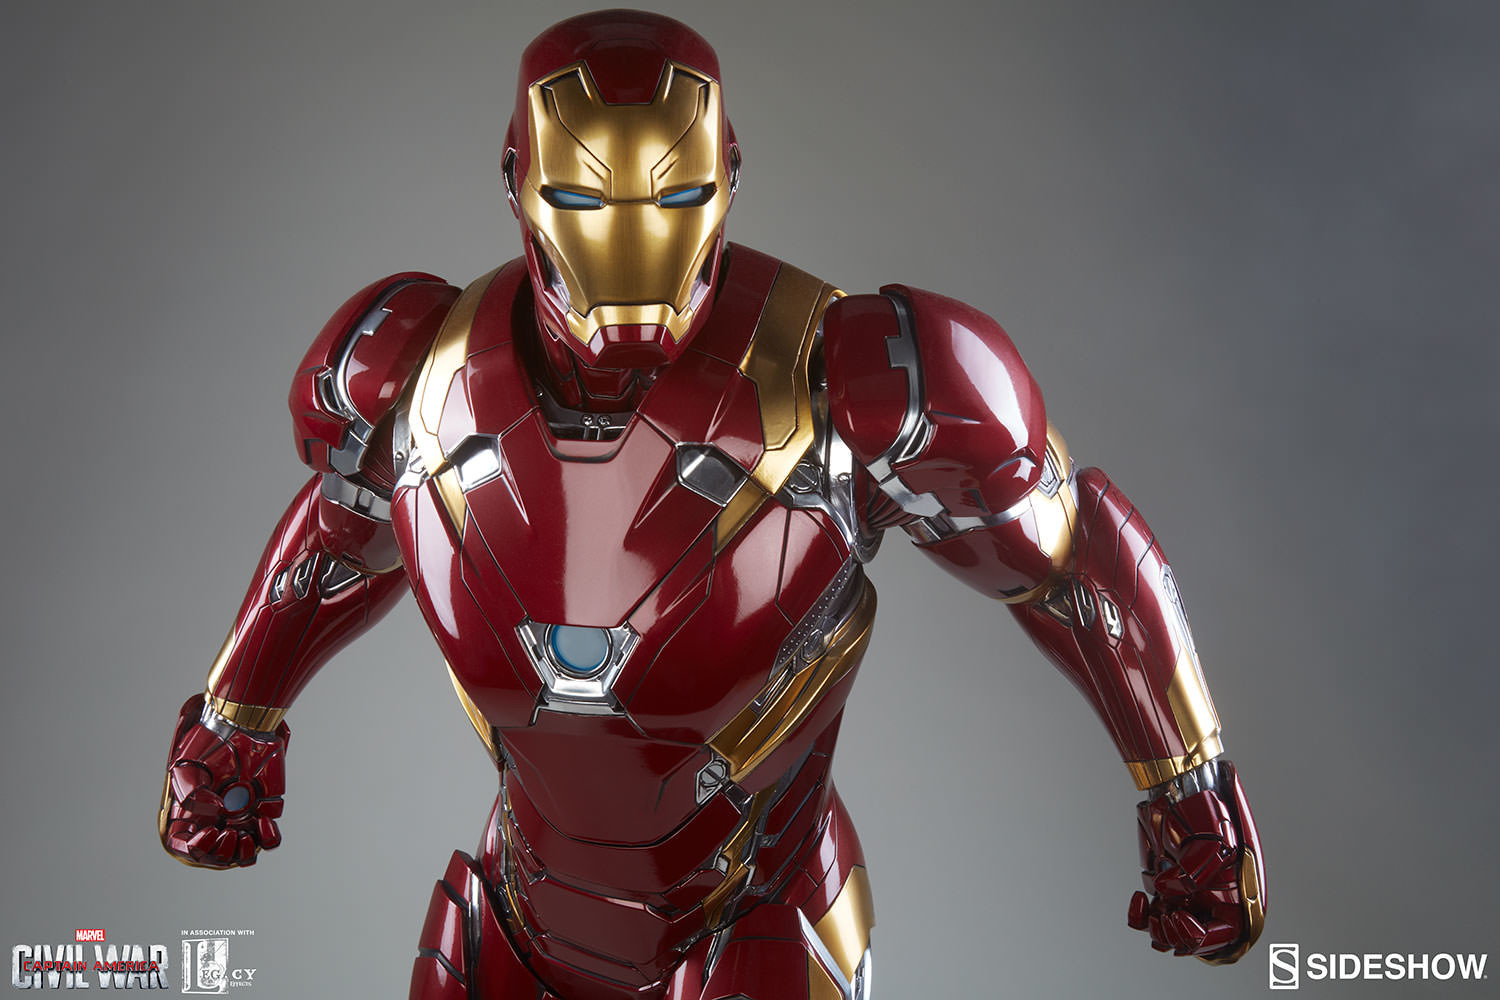 pio-paulo-santana-marvel-captain-america-civil-war-iron-man-mk-xlvi-legendary-scale-400291-05.jpg